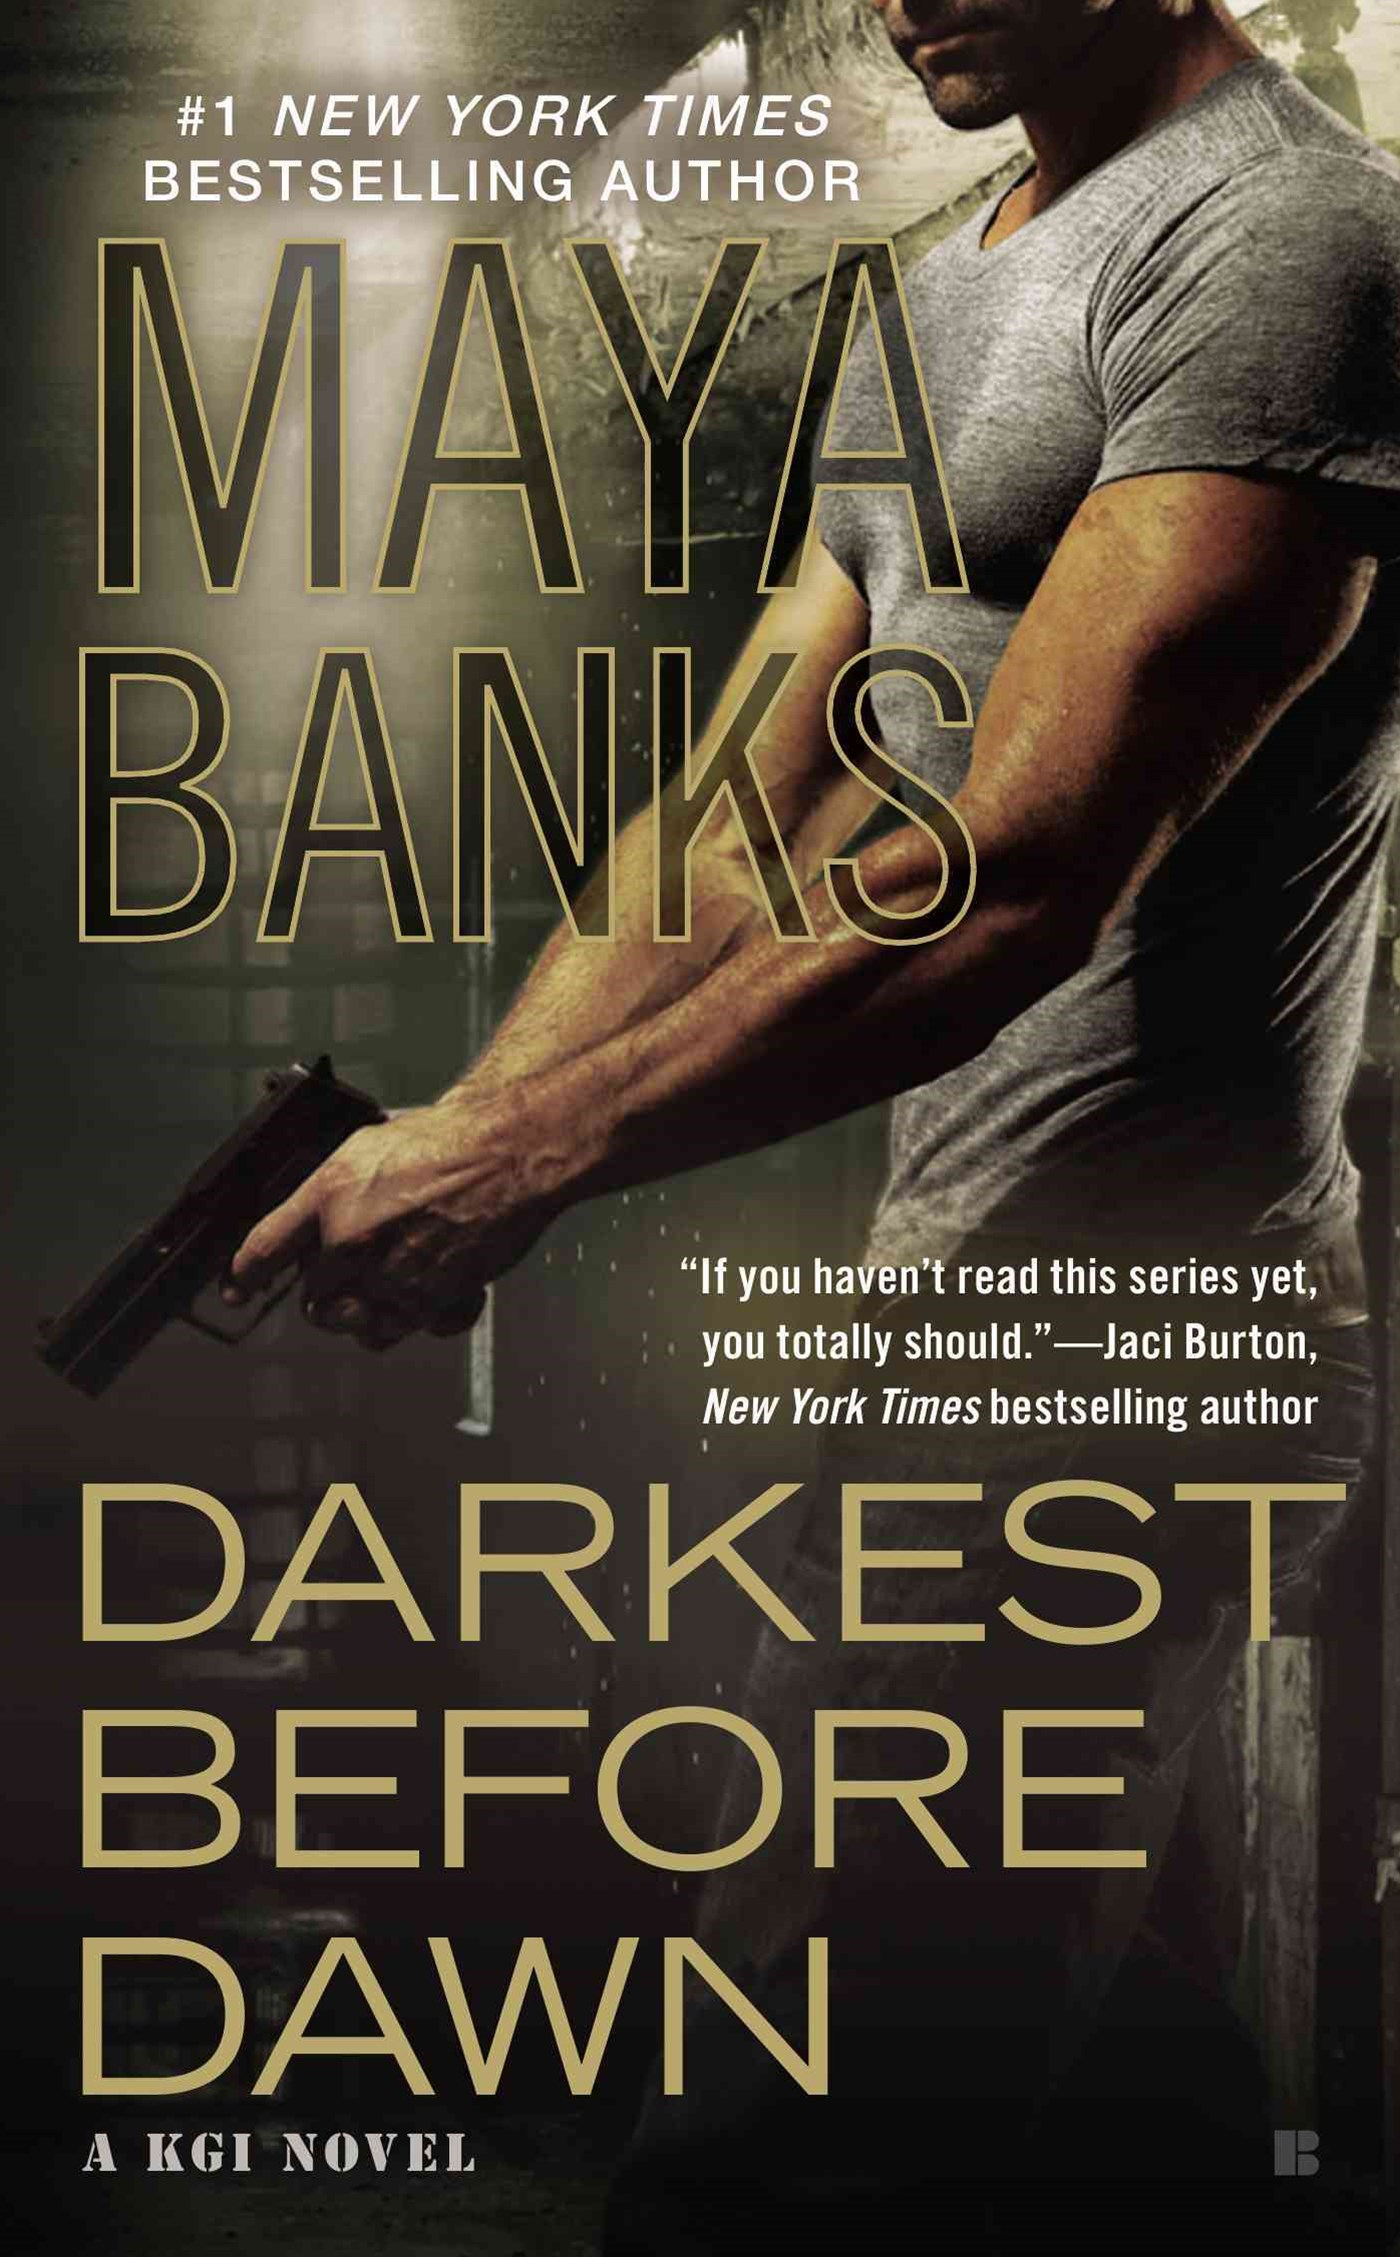 Darkest Before Dawn: A KGI Novel Book 10